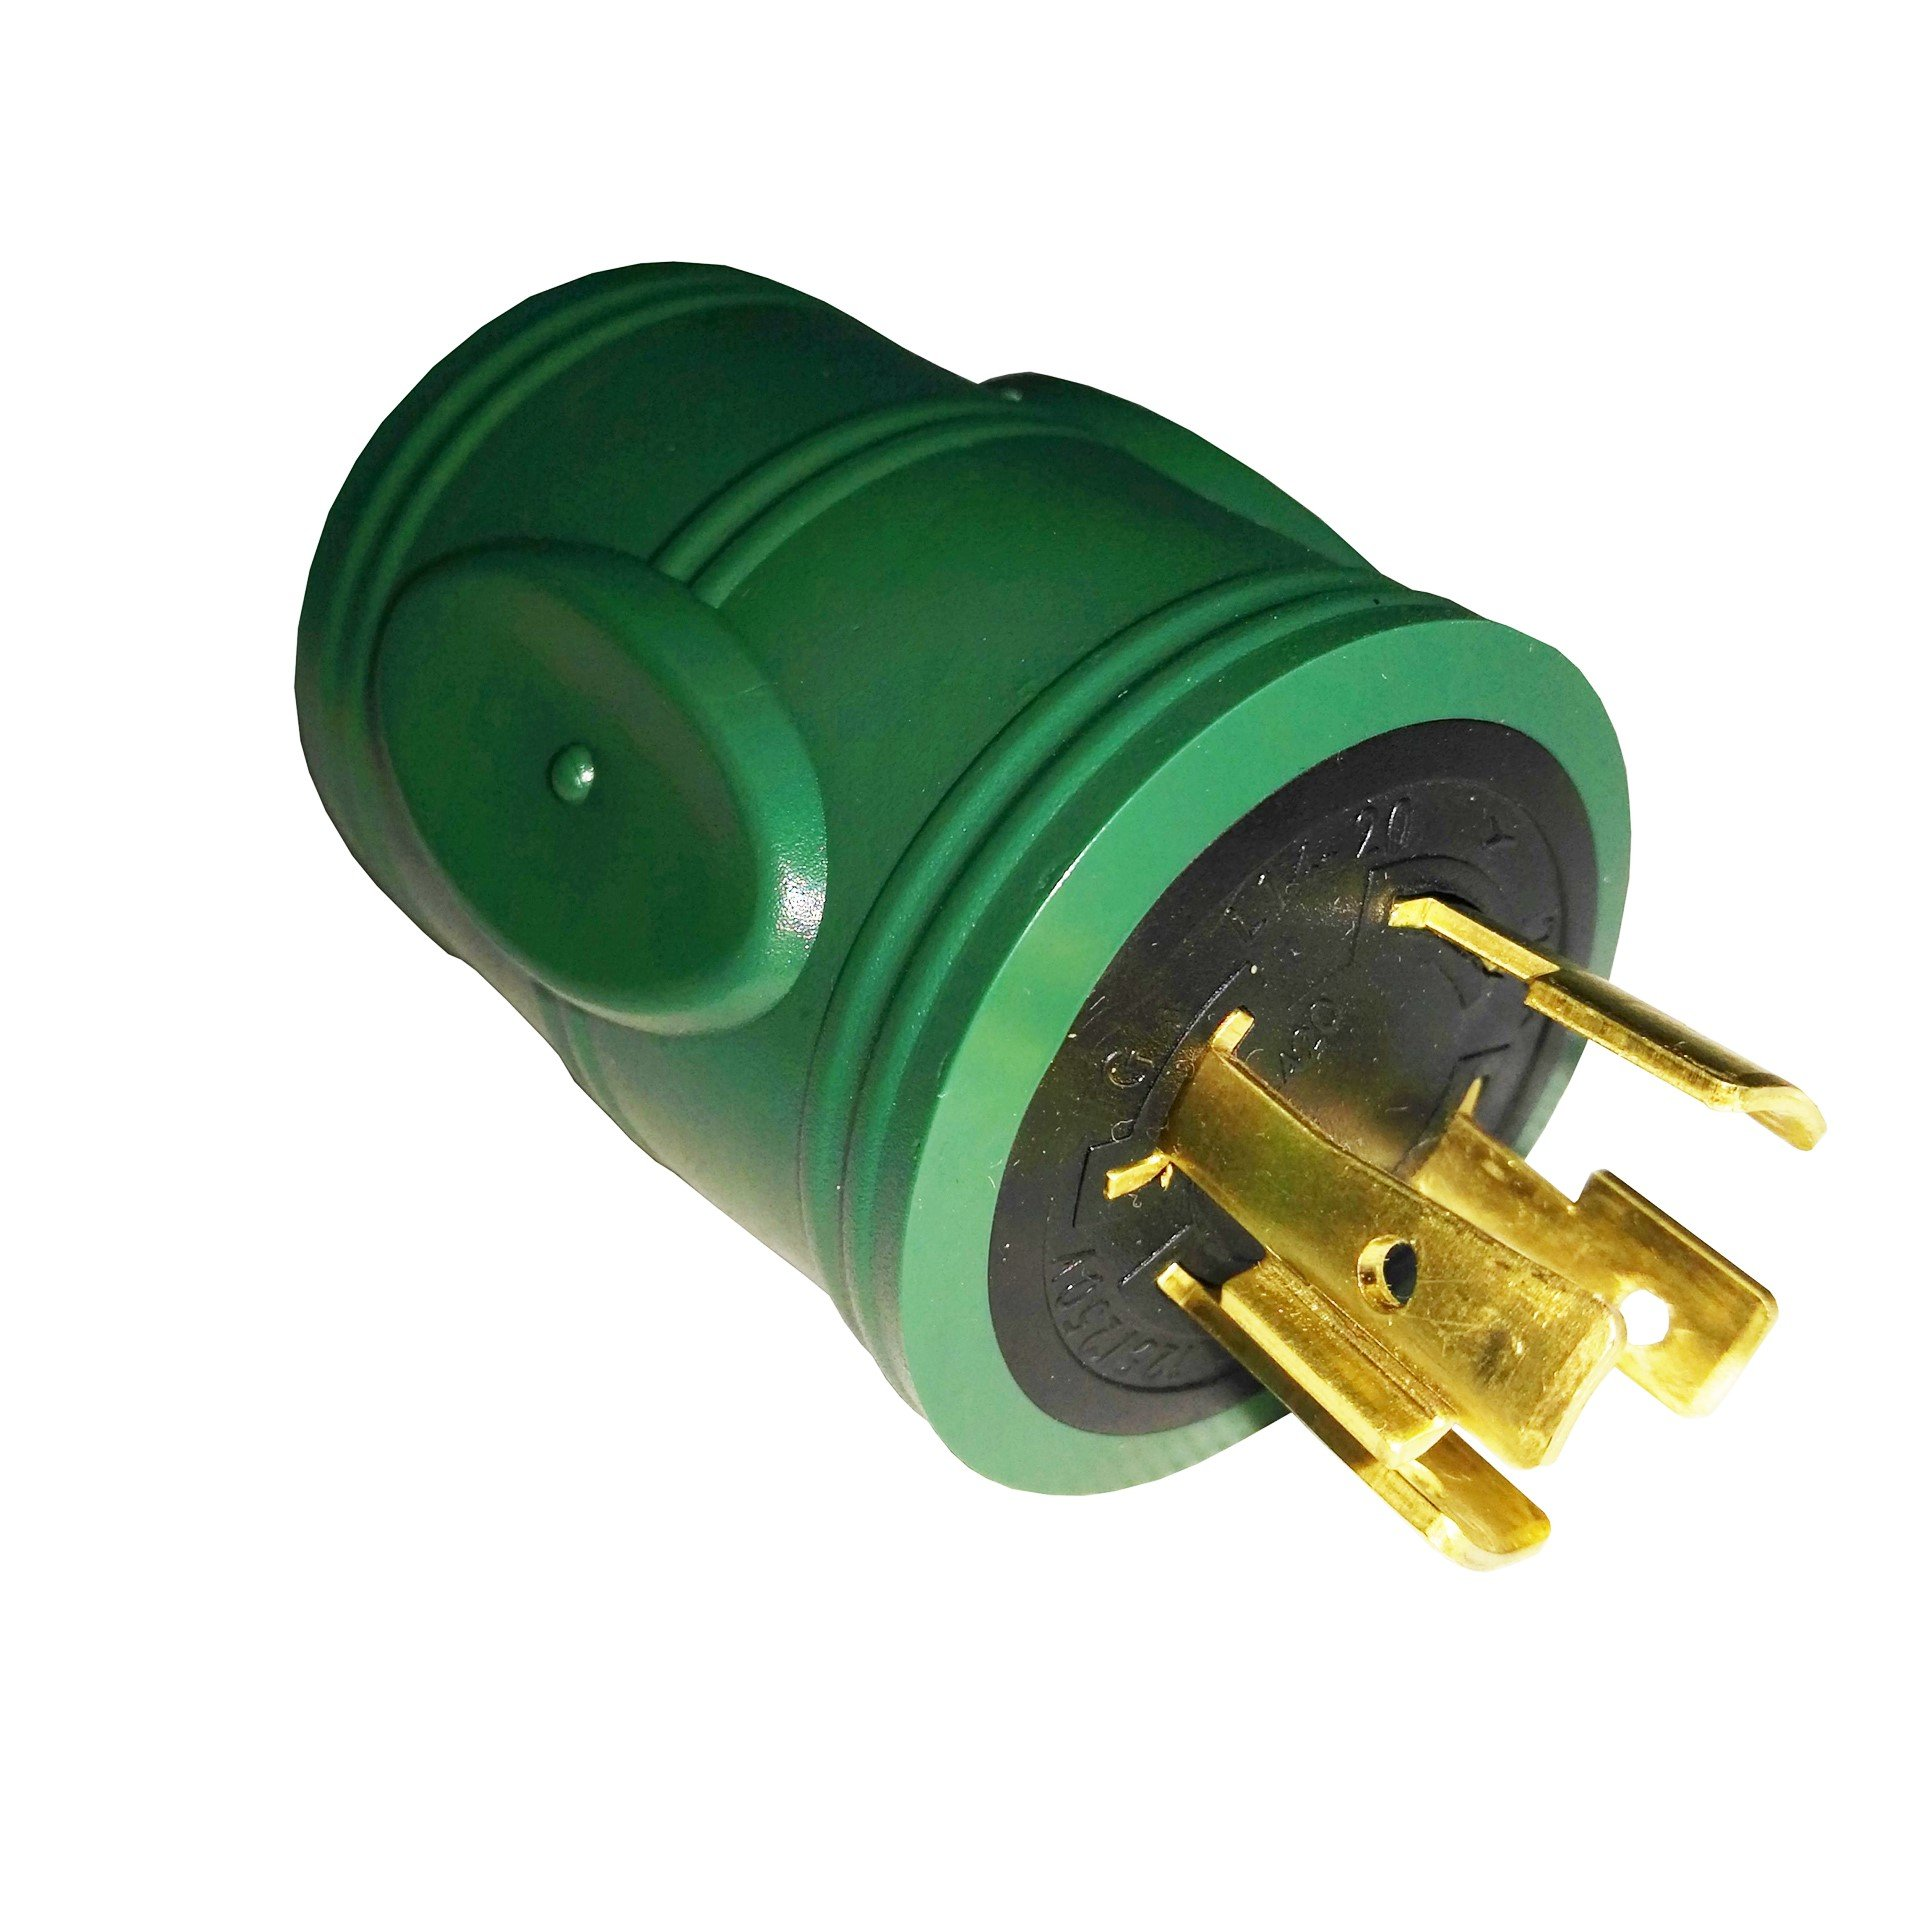 Cheap L14 20 Plug Find Deals On Line At Alibabacom Wiring A Generator 4prong Cable To Outlet Get Quotations Parkworld 884975 Adapter 4 Prong Locking 20a 30a